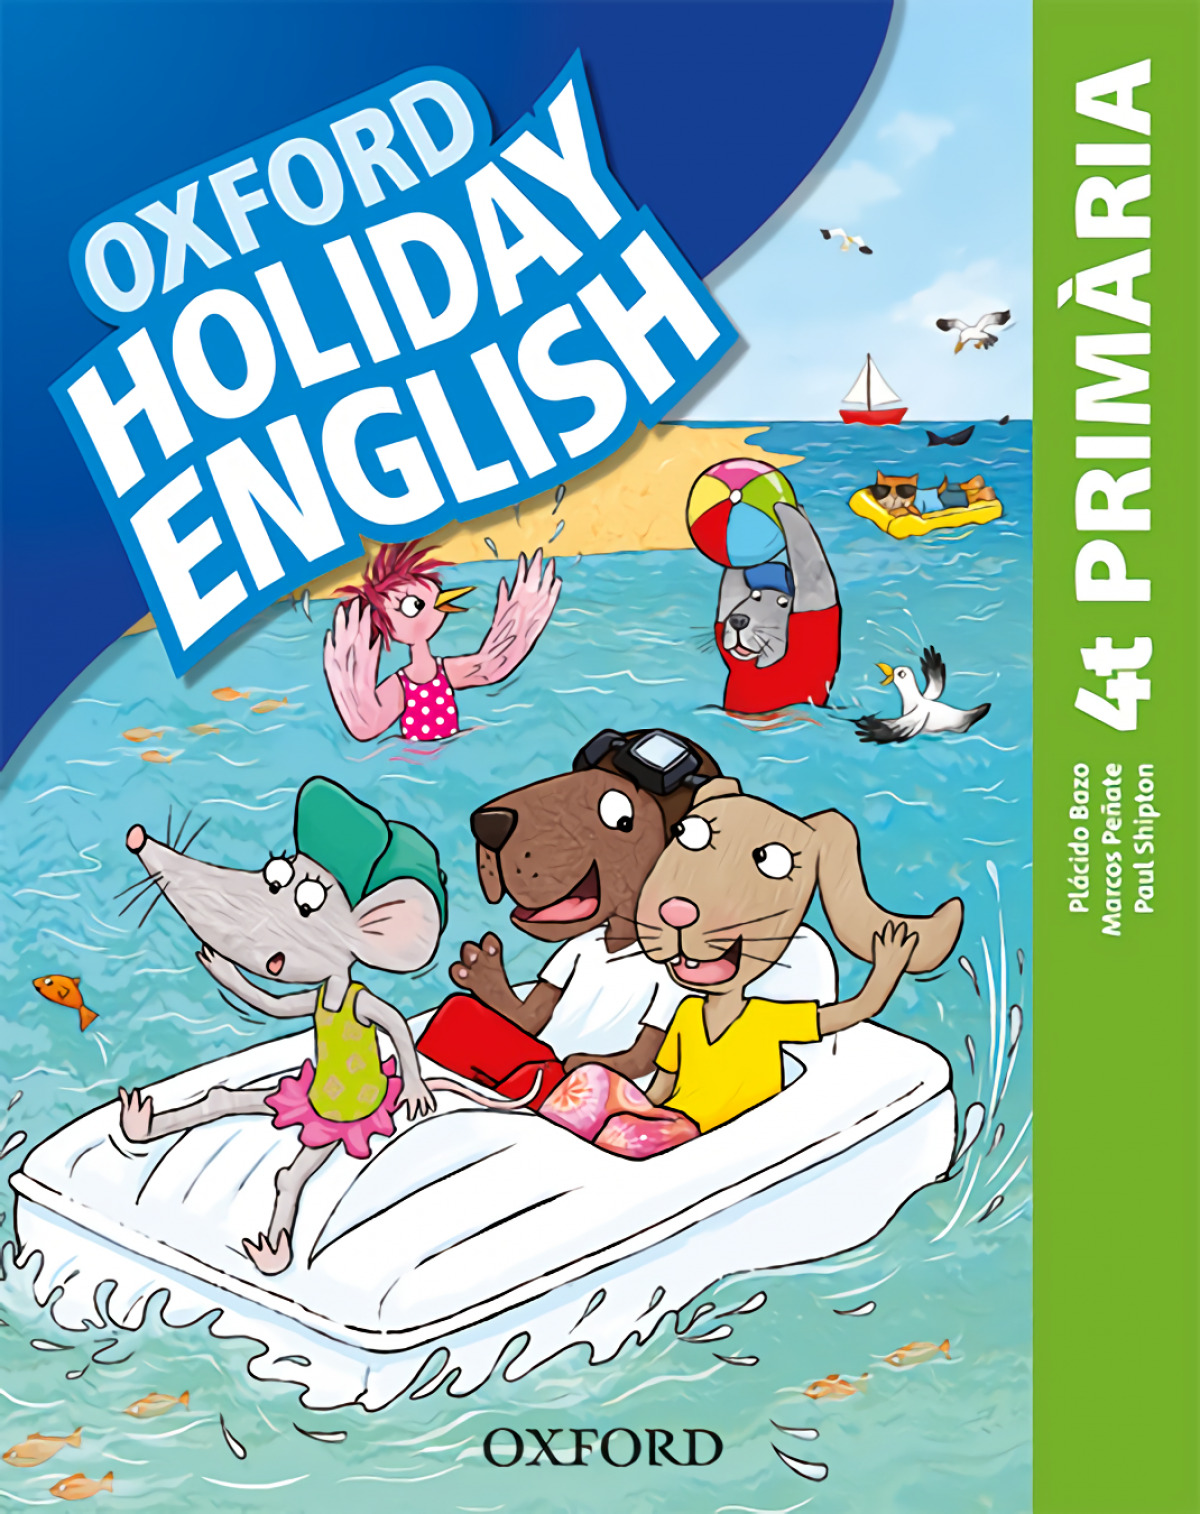 HOLIDAY ENGLISH 4 PRIMARY CATALAN THIRD REVISED EDITION